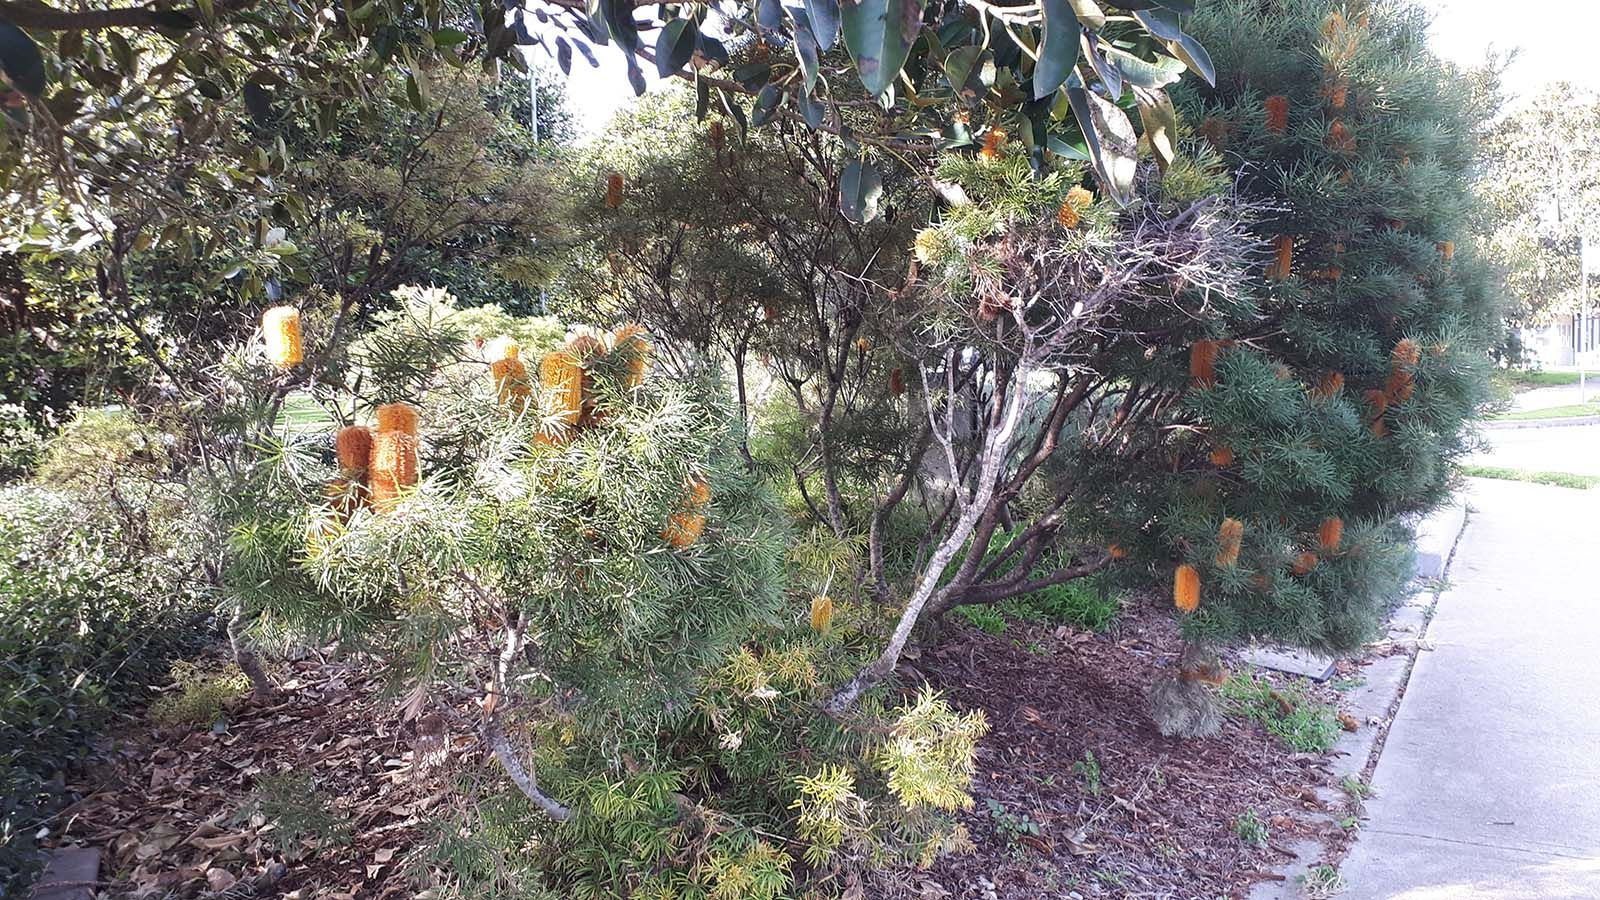 Native plants alongside a footpath in a residential area. banner image